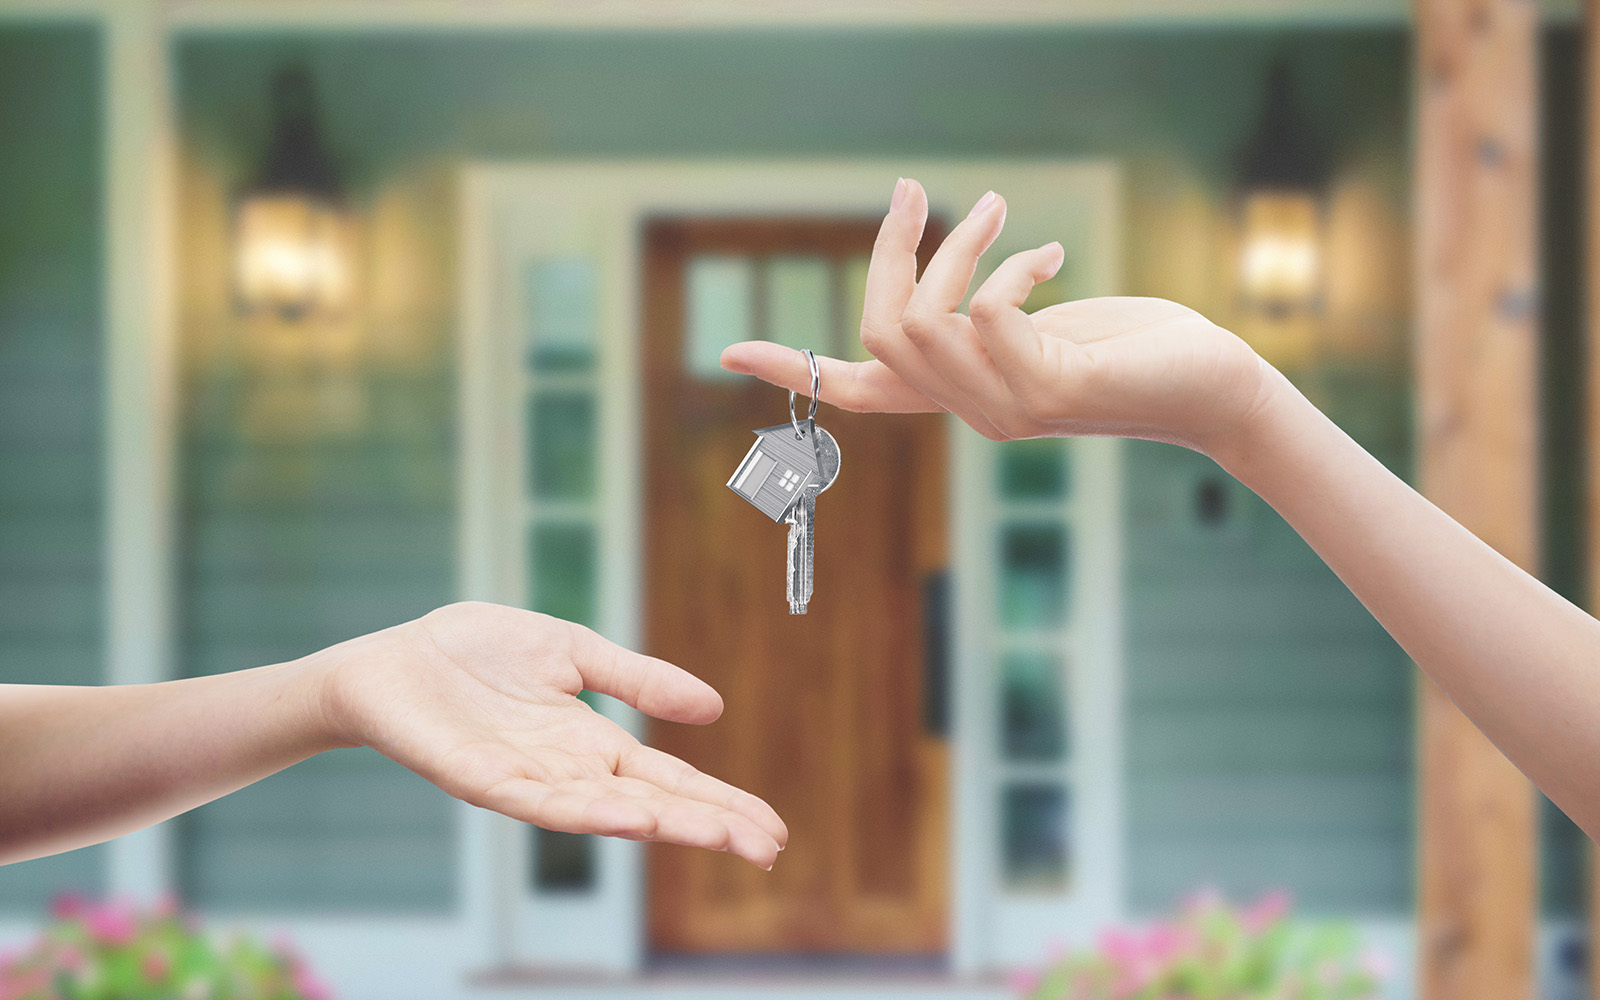 former owner giving new owner key to their new home